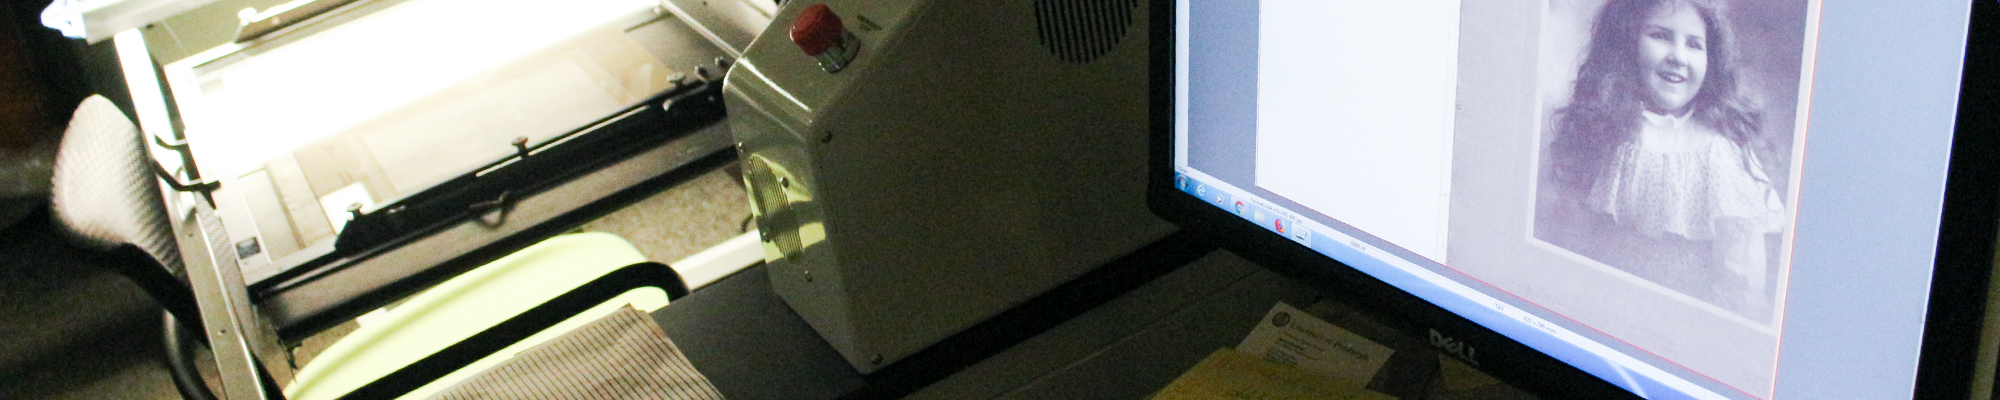 Using the Digibook scanner to scan a large photograph